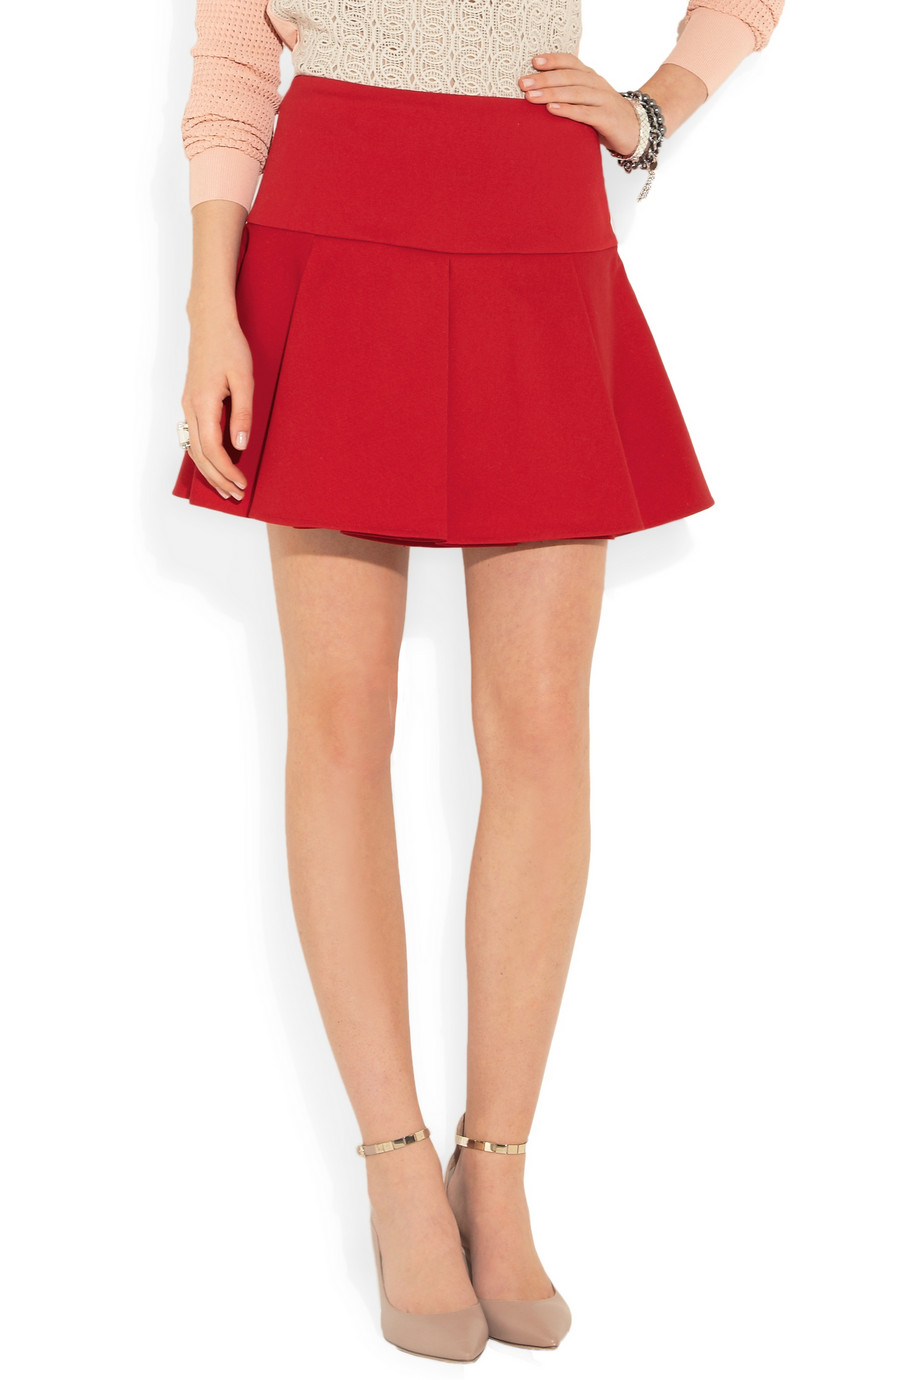 Red valentino Pleated Stretch-cotton Mini Skirt in Red | Lyst